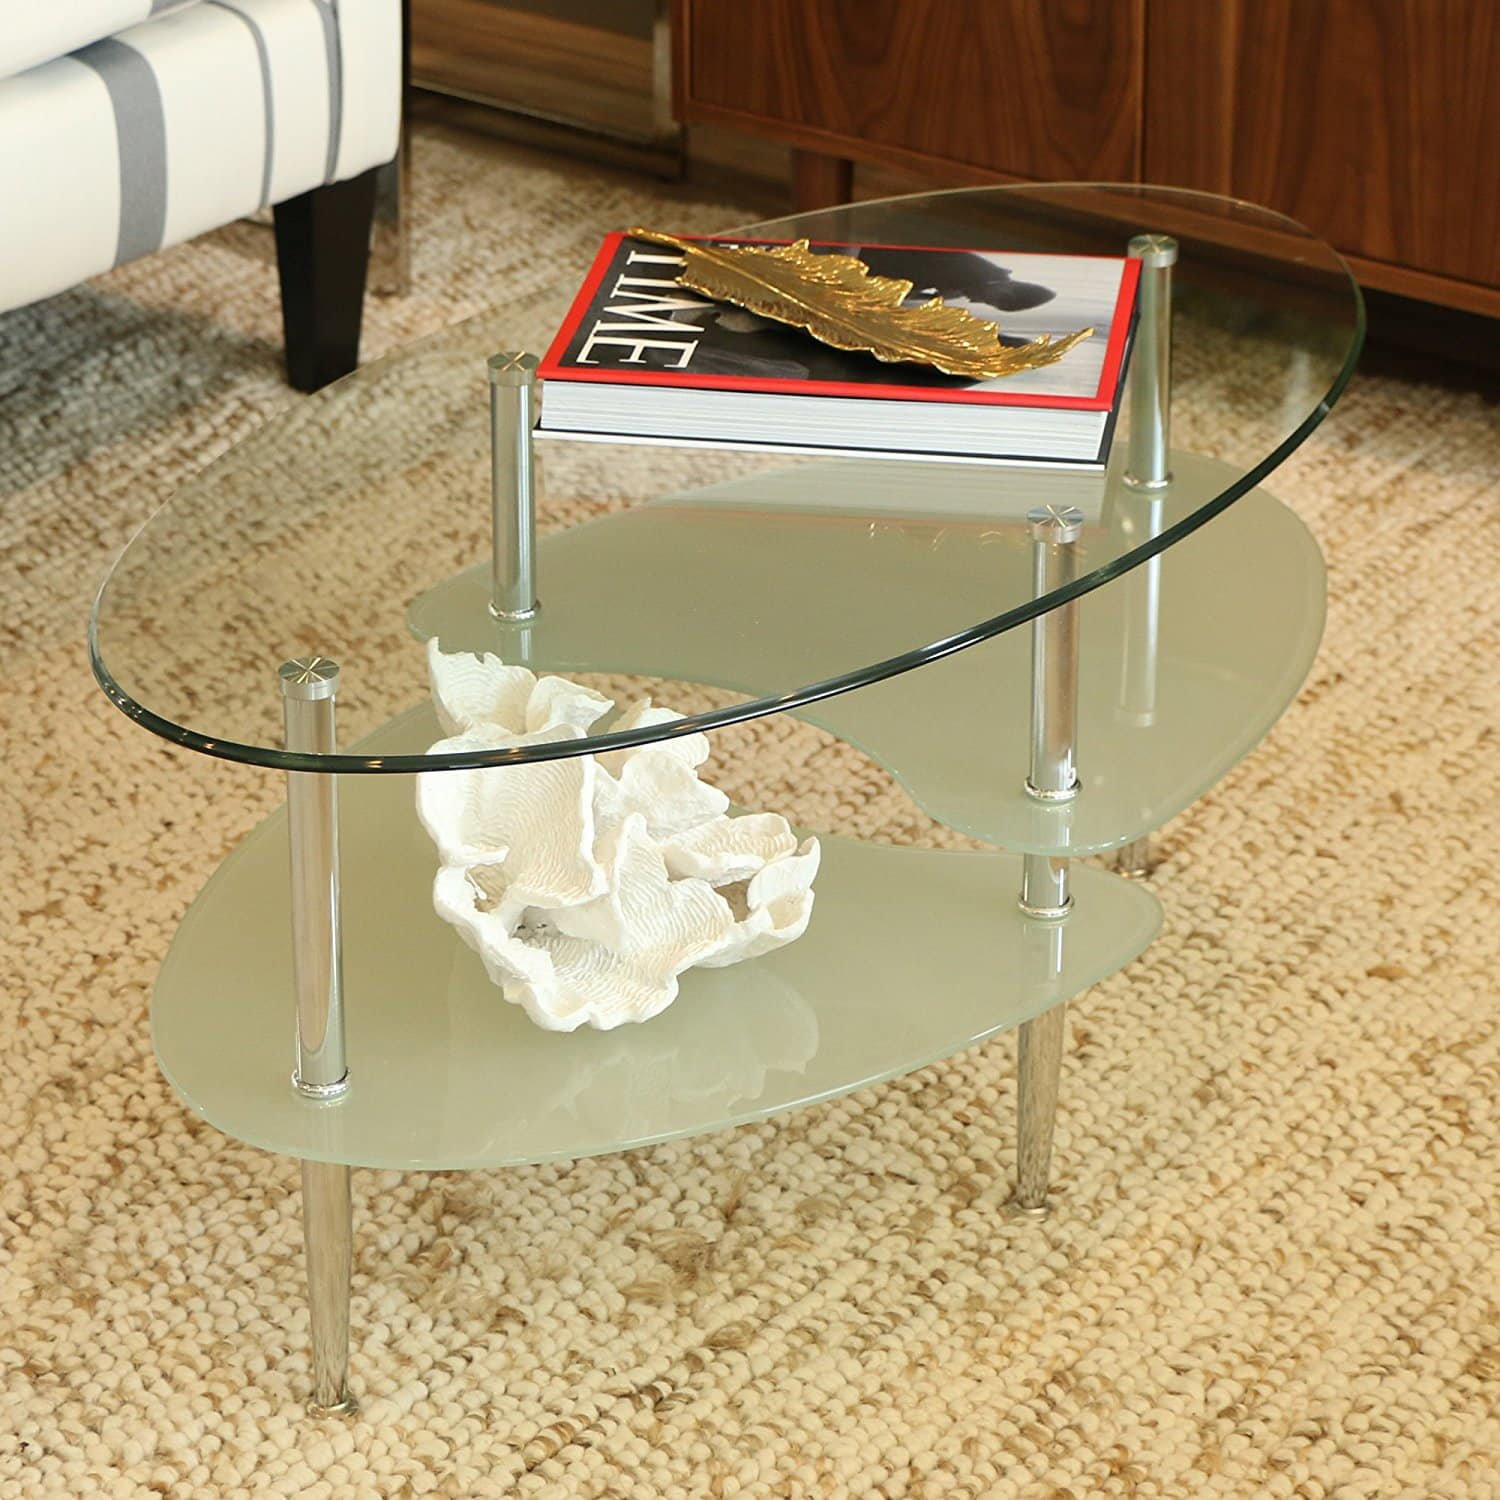 Charmant These Cute, Cheap Coffee Tables Are All From Amazon And These Coffee Tables  Are All